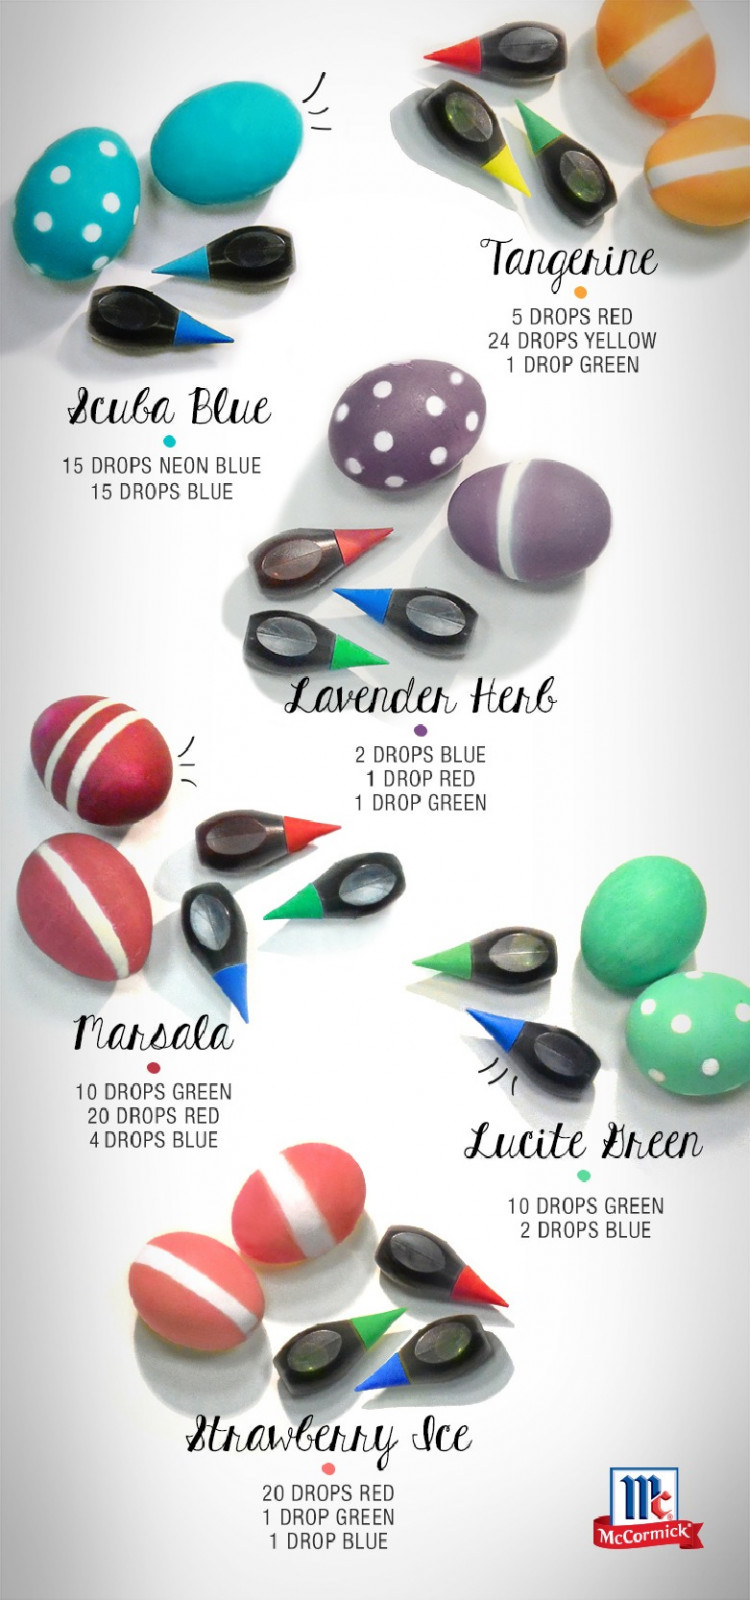 How to Dye Easter Eggs with Food Coloring Instead of Kits!